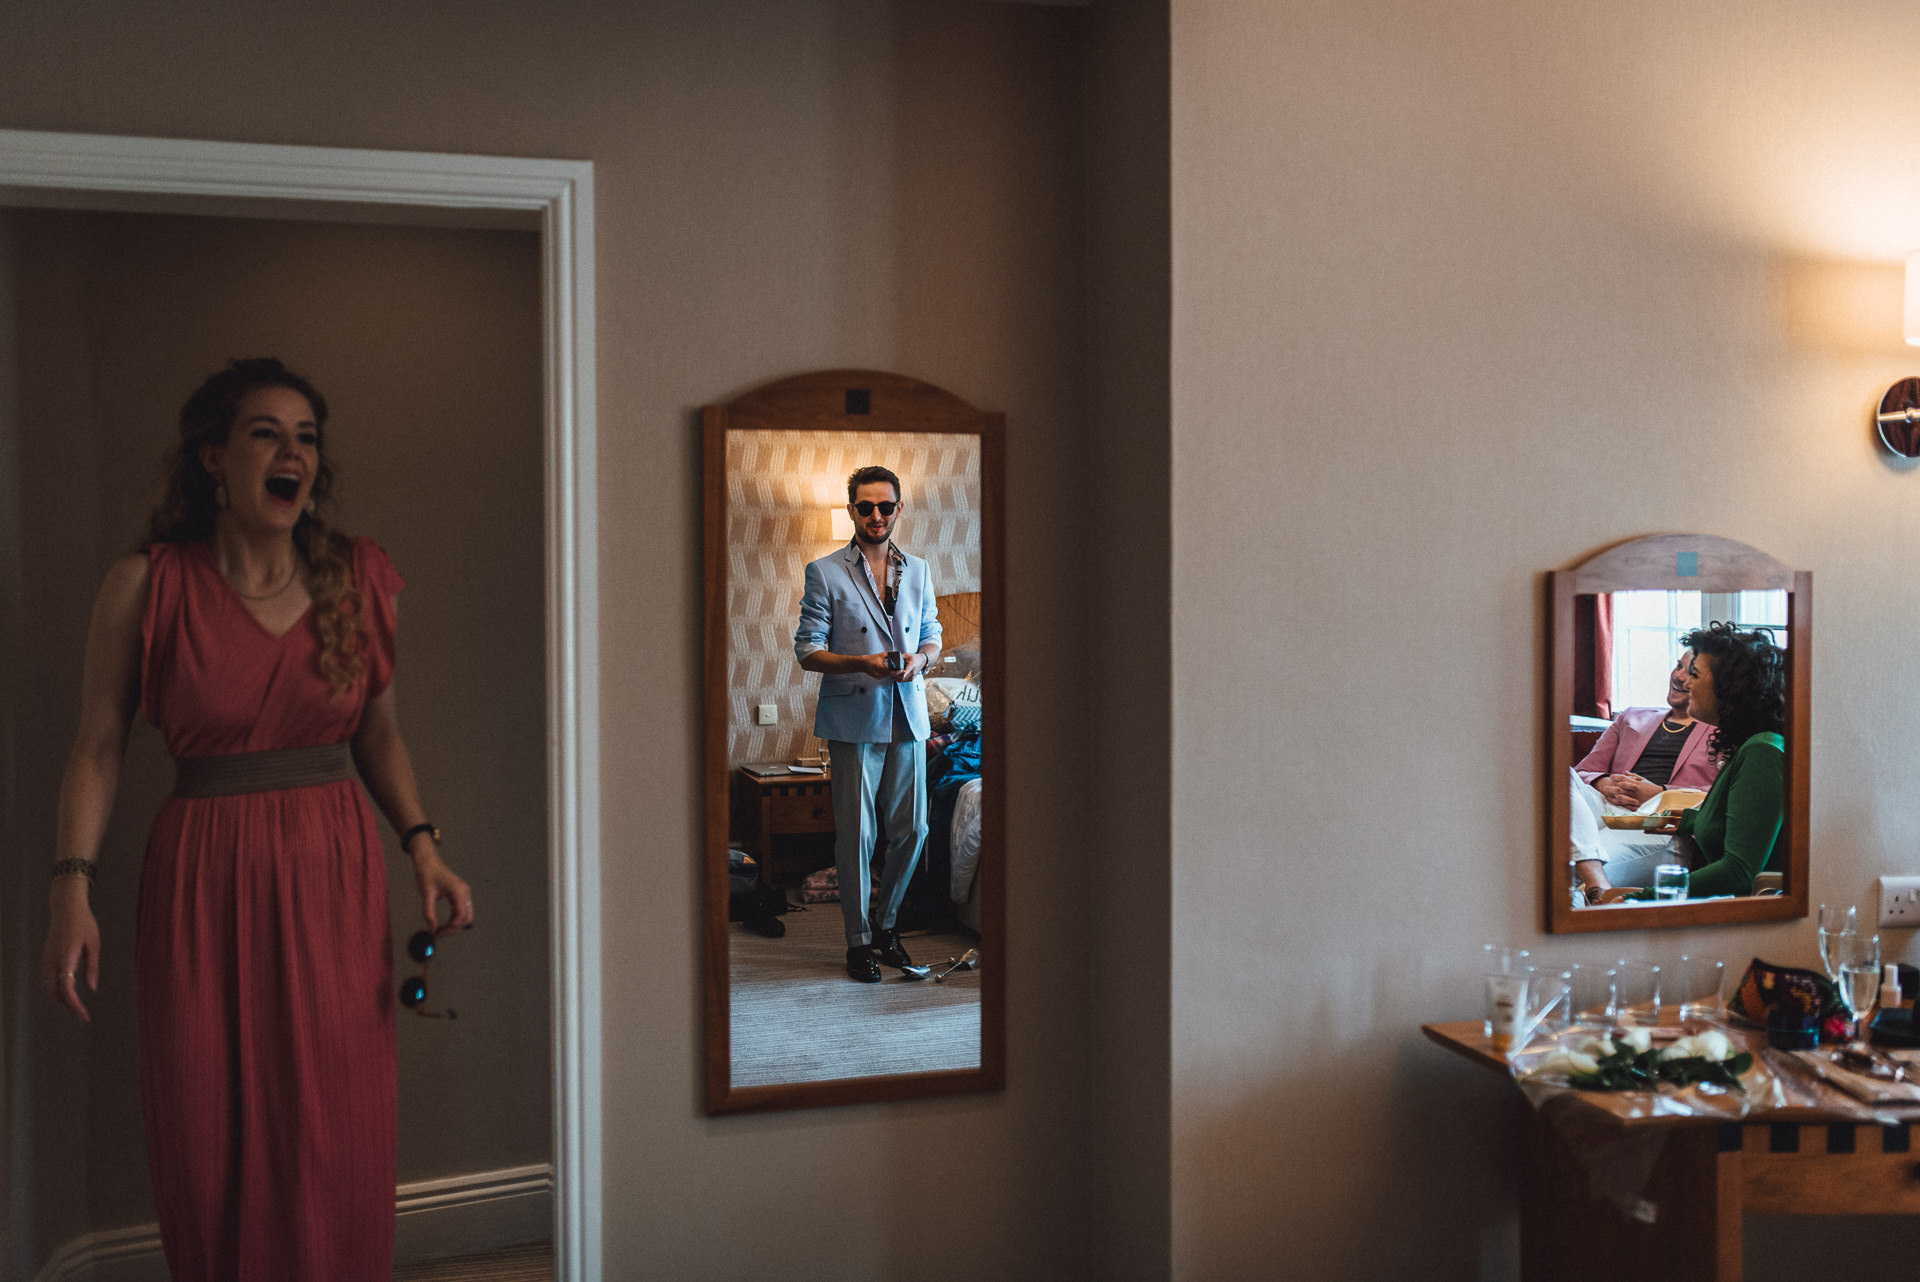 Groom getting ready, reflections of him and his friends in the mirror. Fun, creative wedding photography ideas.